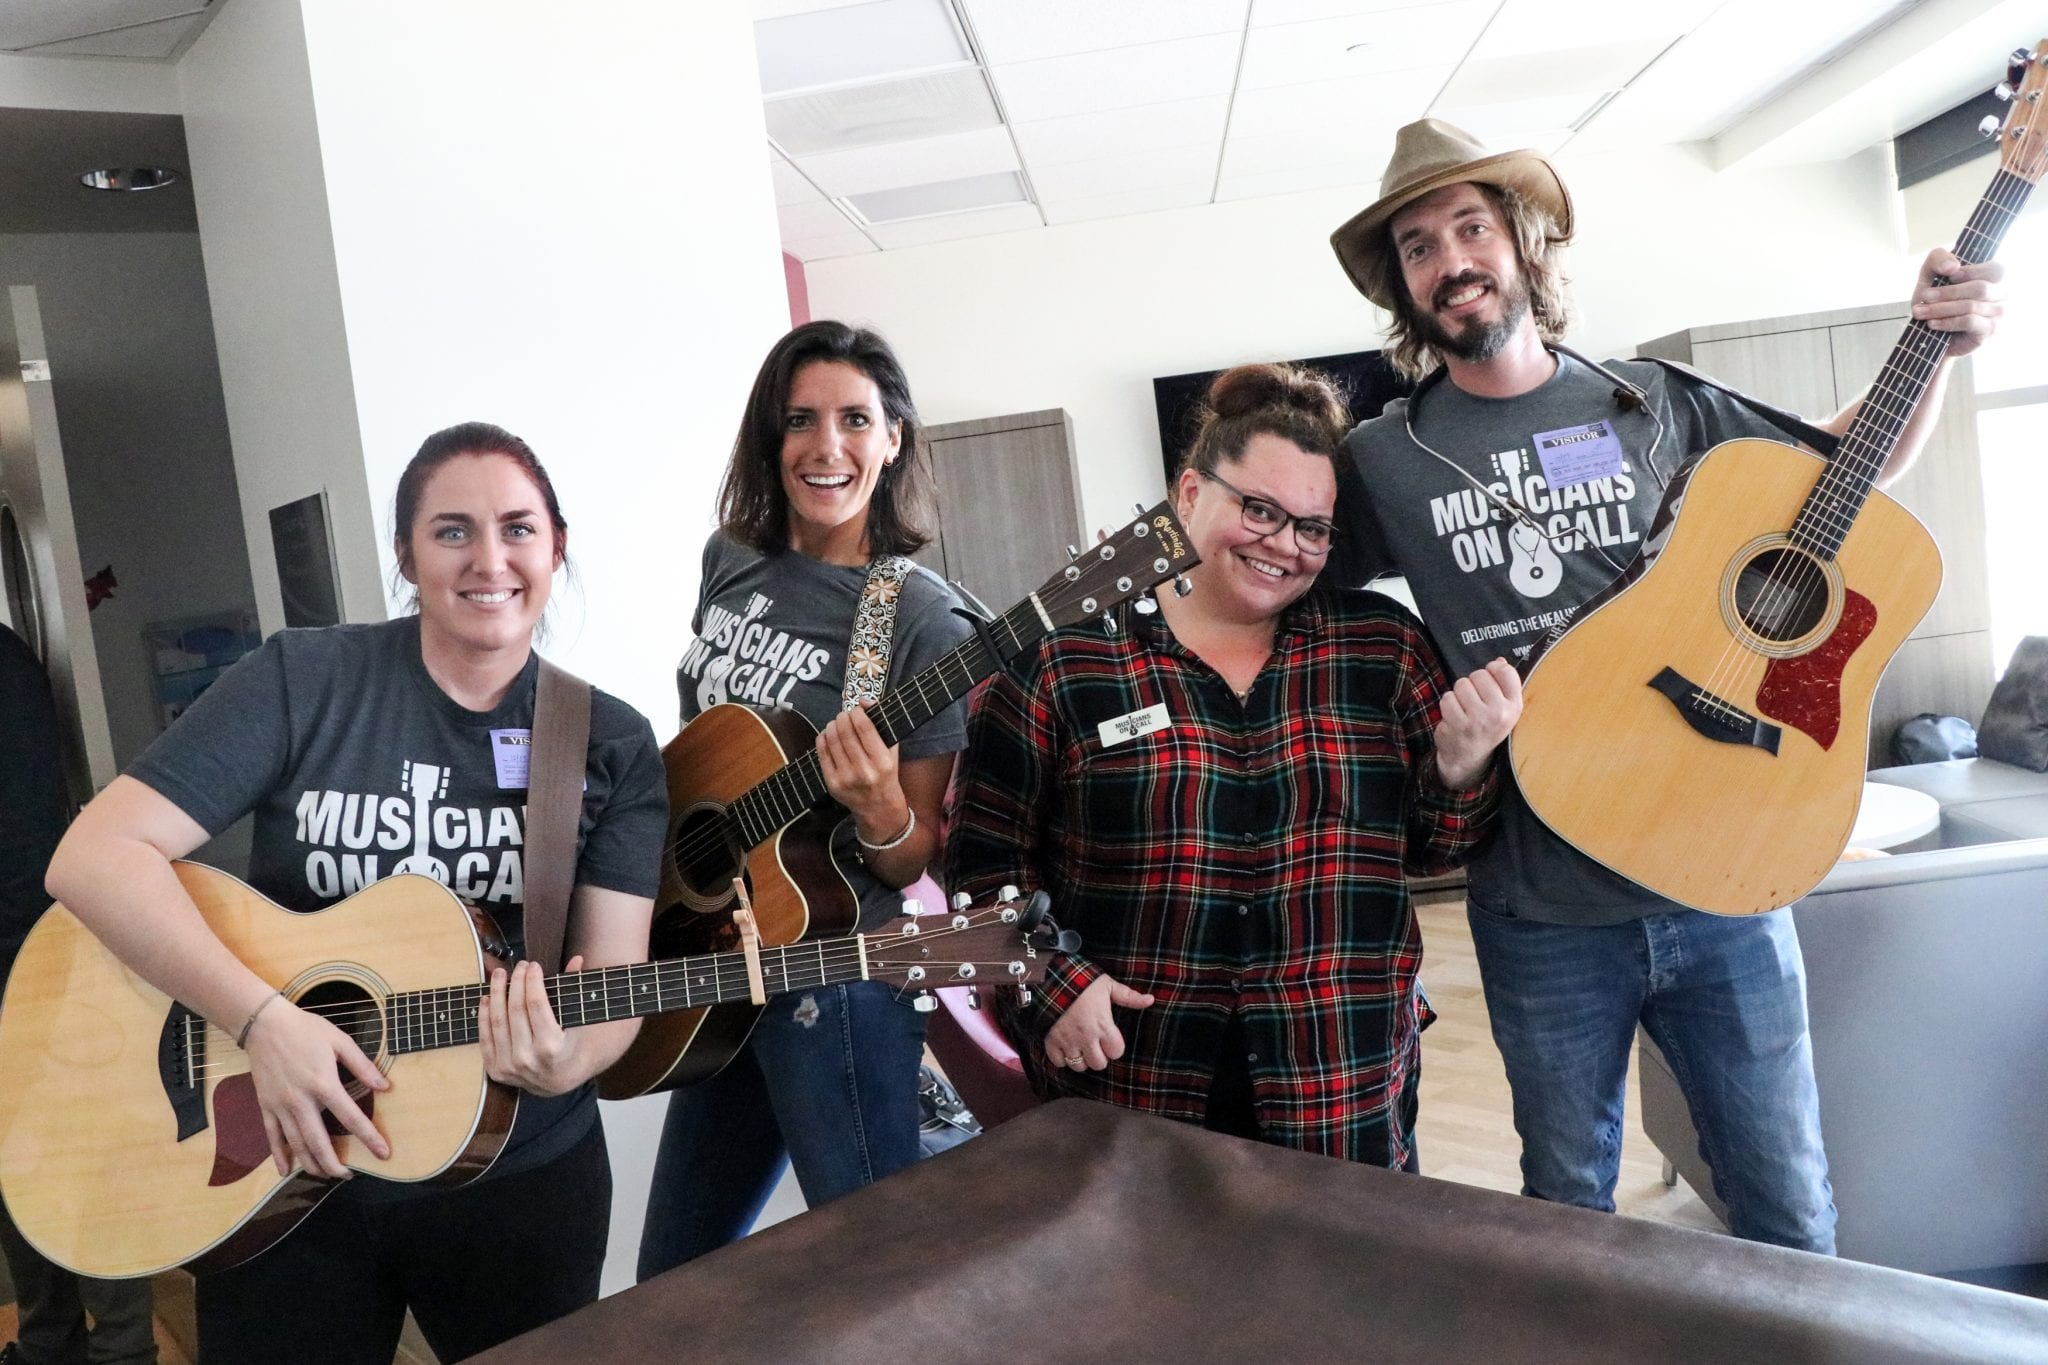 The Greatest Showman Star And Award-winning Songwriters Perform Hit Songs  From Film For Hospital Patients Through Musicians On Call - Musicians On  Call